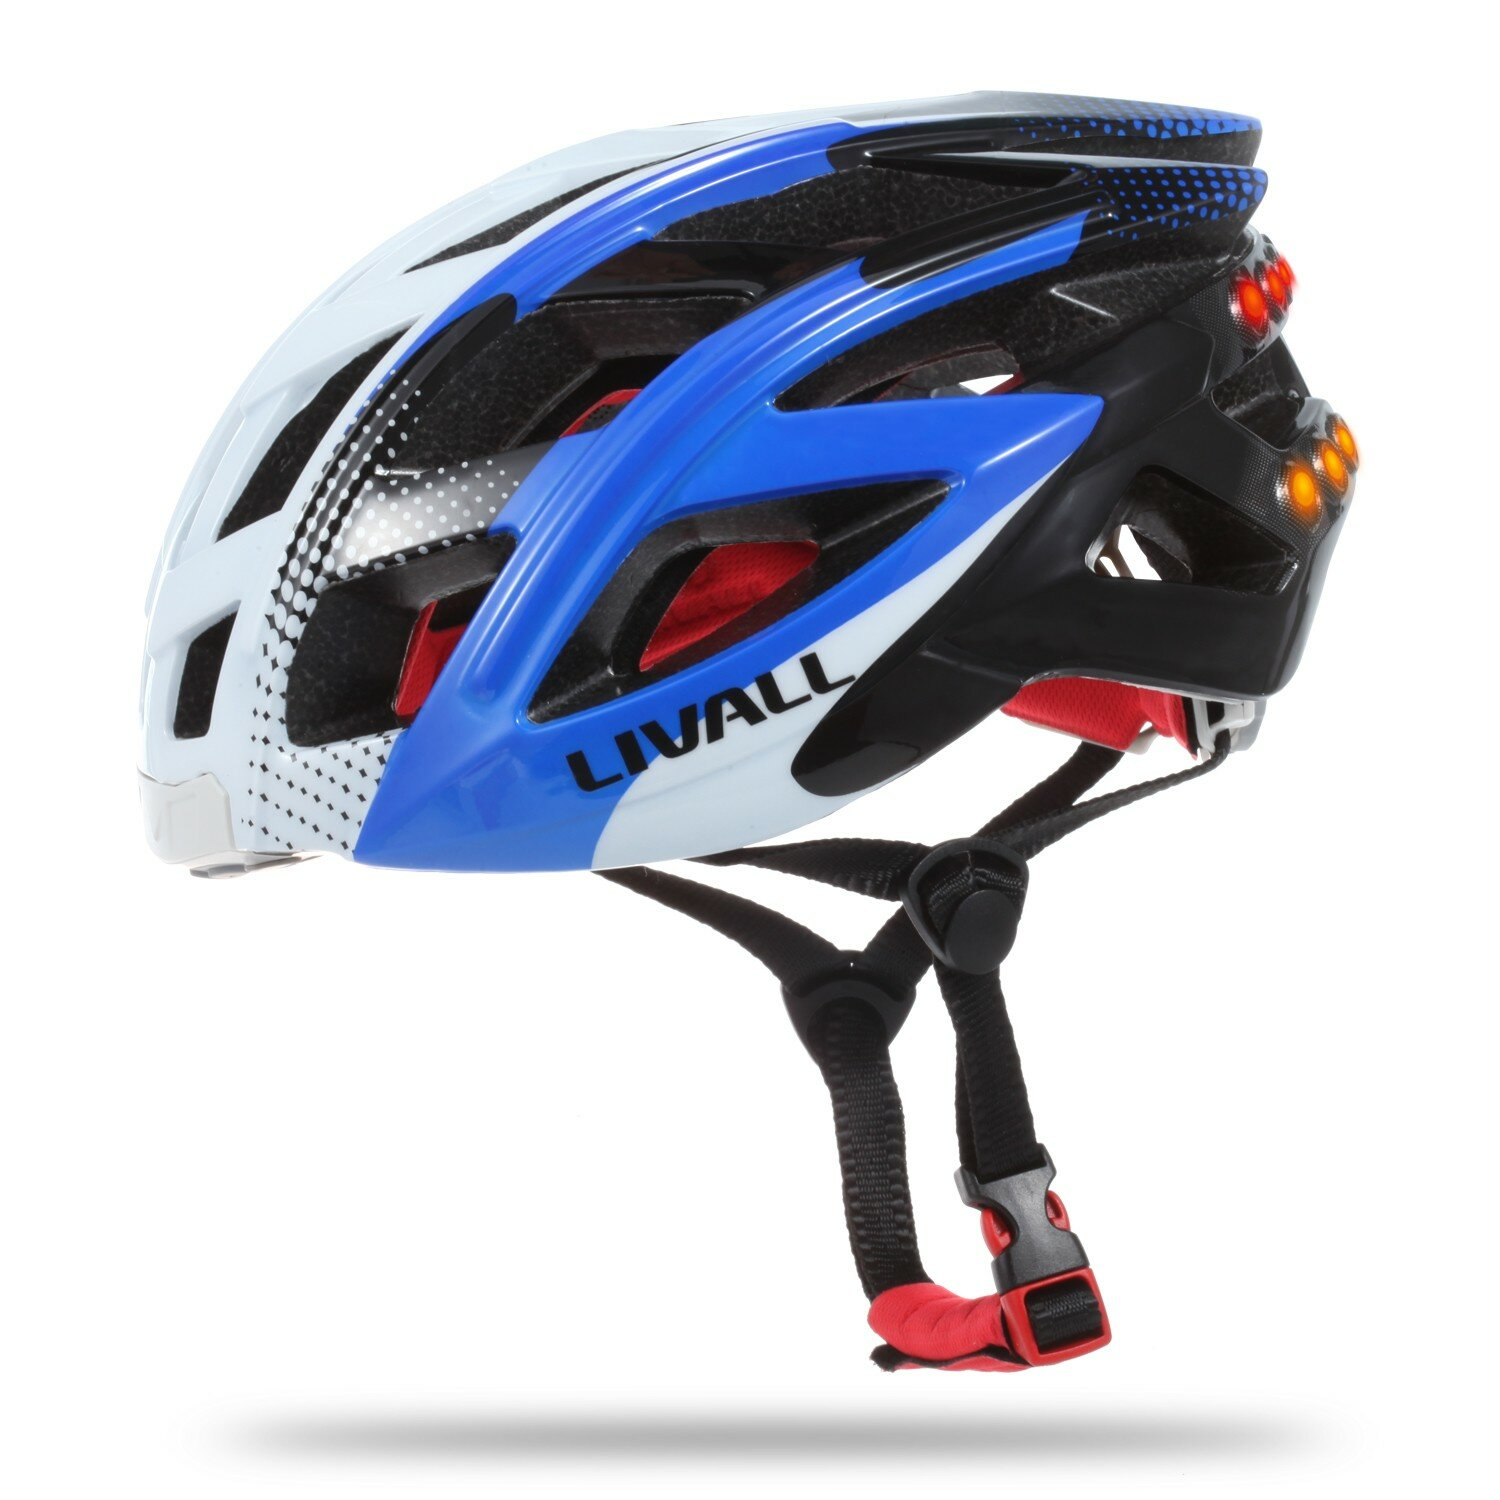 LIVALL 7in1 bluetooth Smart Bike Helmet LED Tail Light Phone Call Music Player Camera Support APP